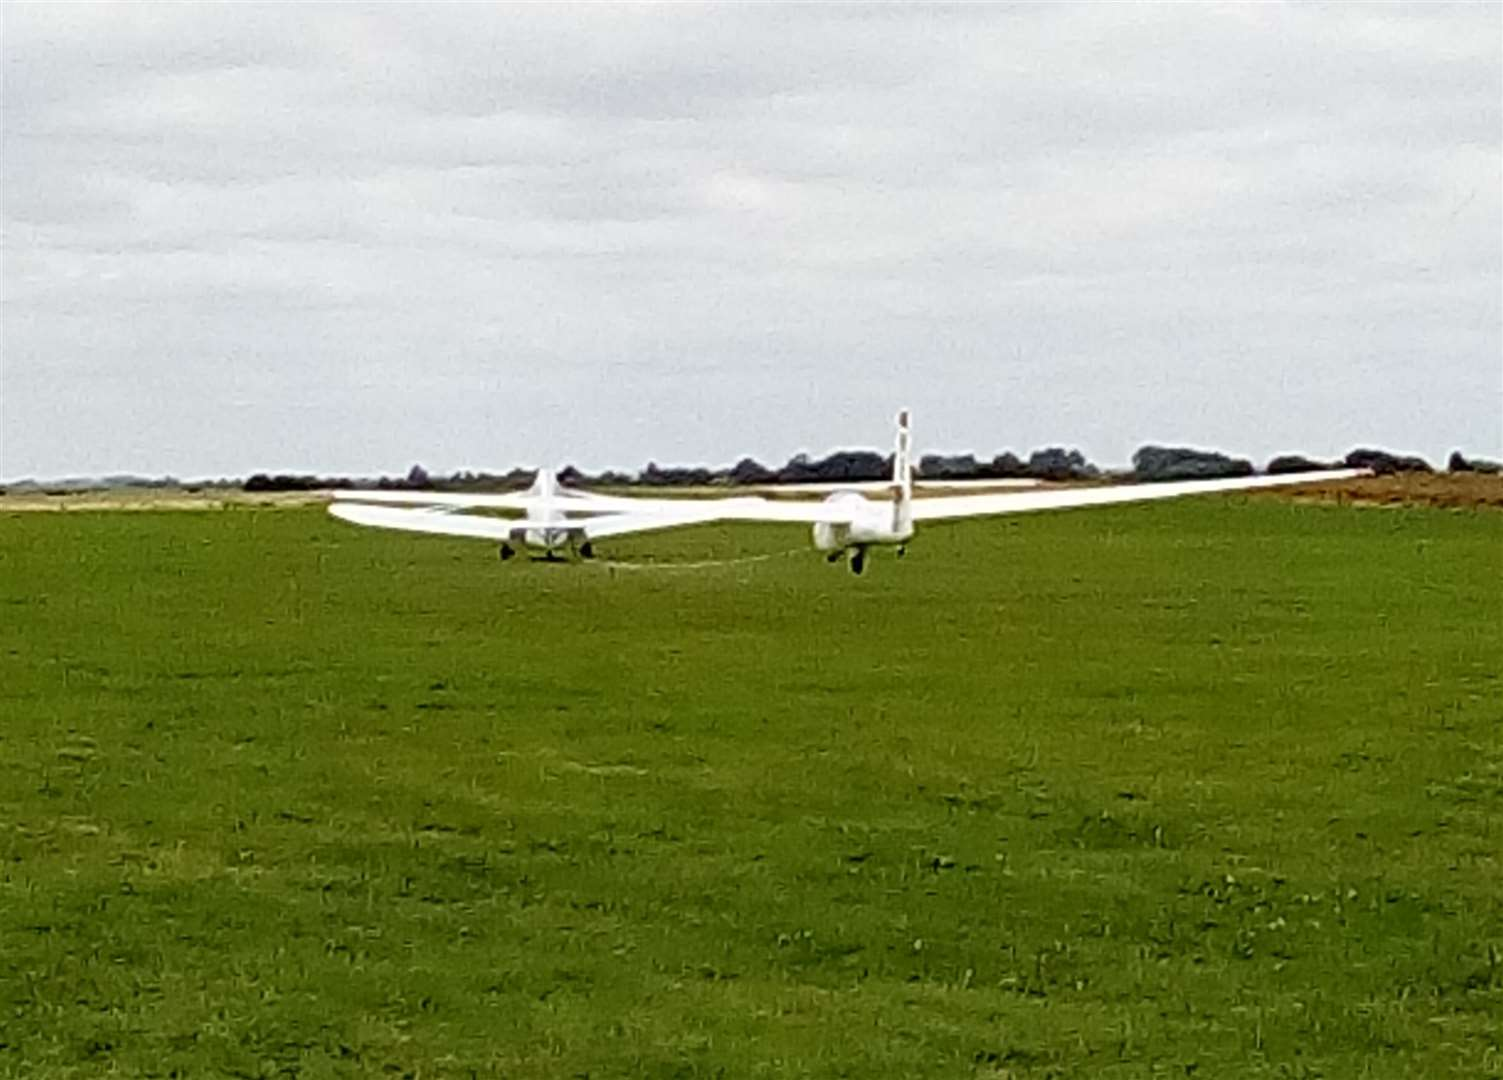 And they're off across the airfield